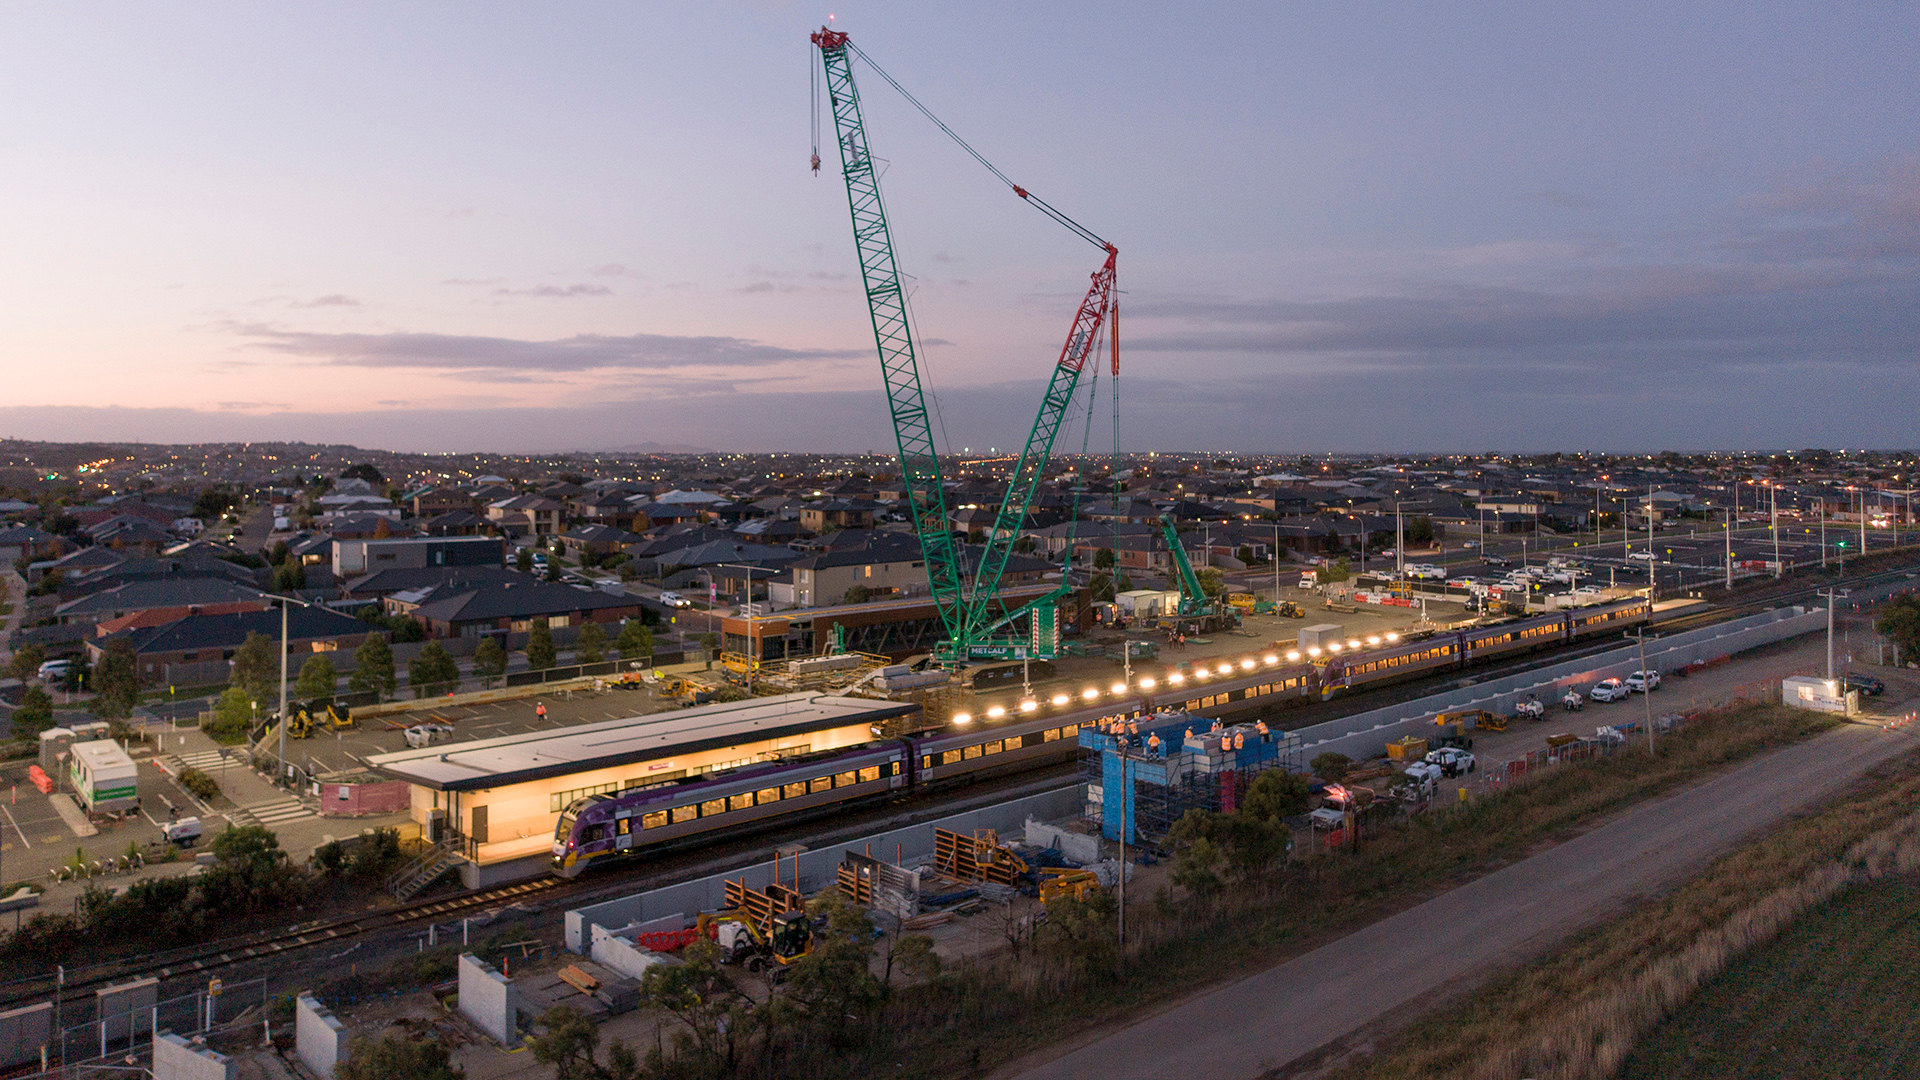 Waurn Ponds Station aerial view of crane lifting in overpass